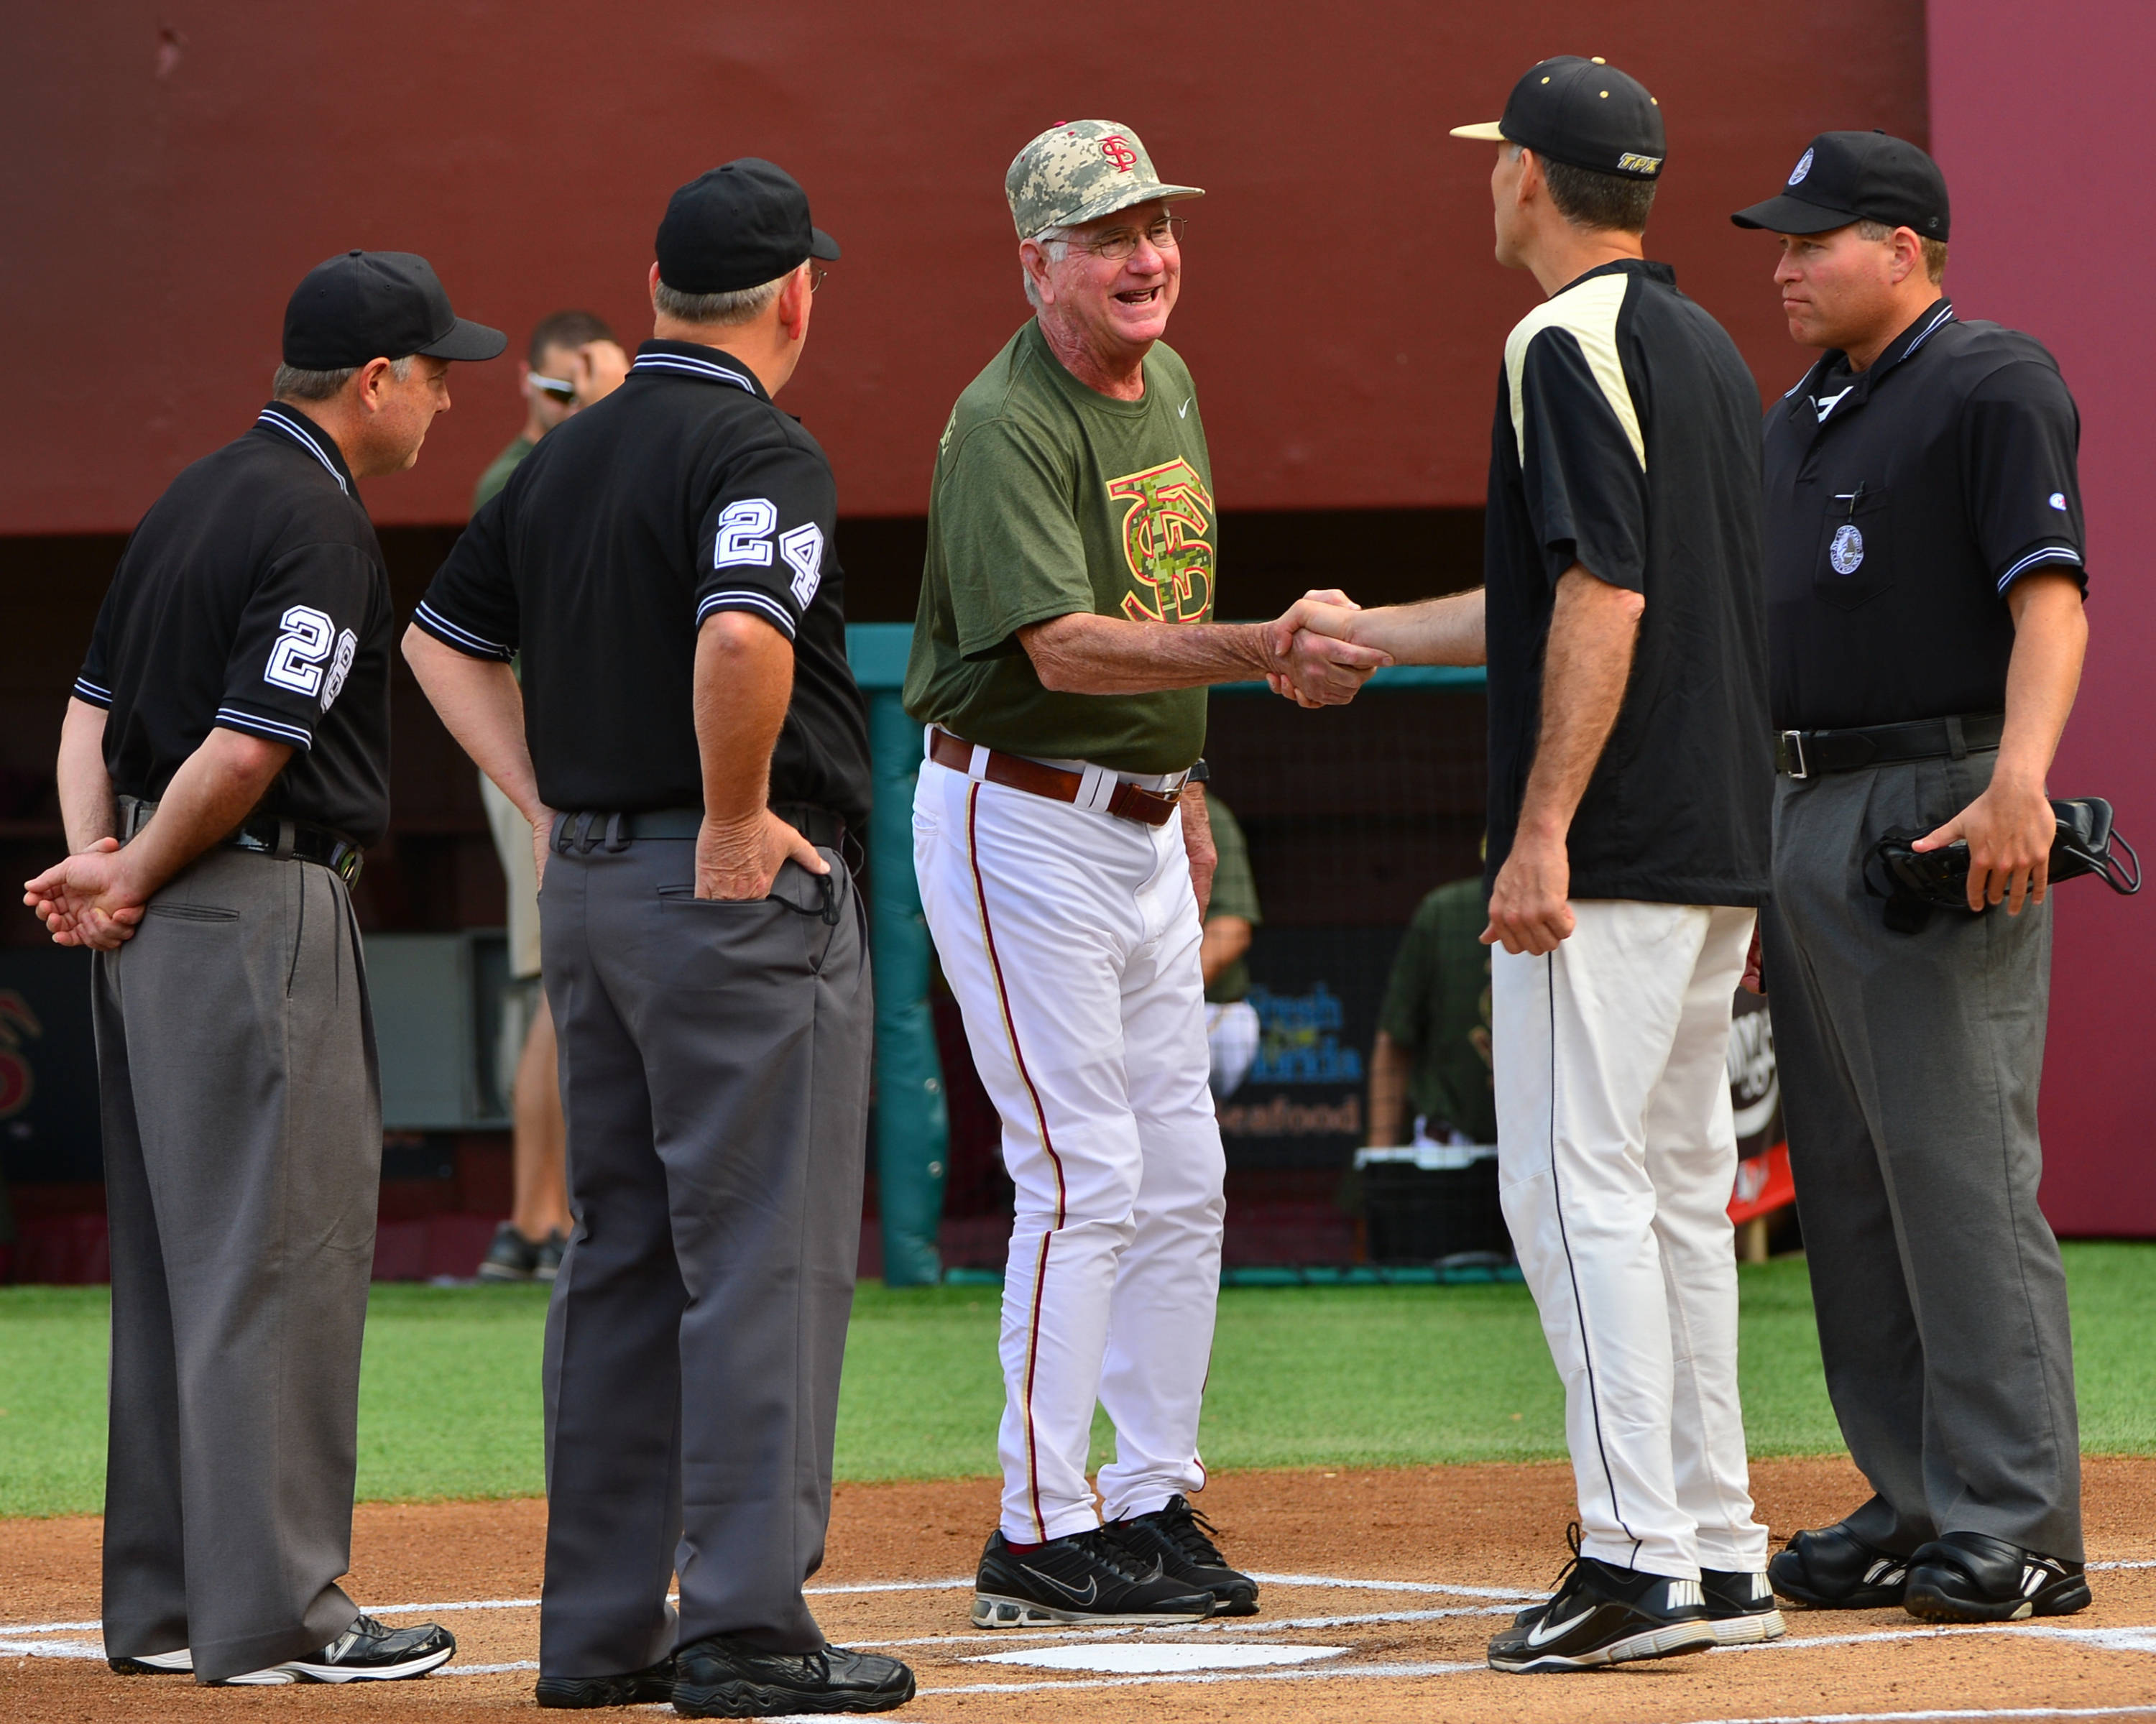 Head coach Mike Martin meets with Wake Forest head coach Tom Walter and the umpires.